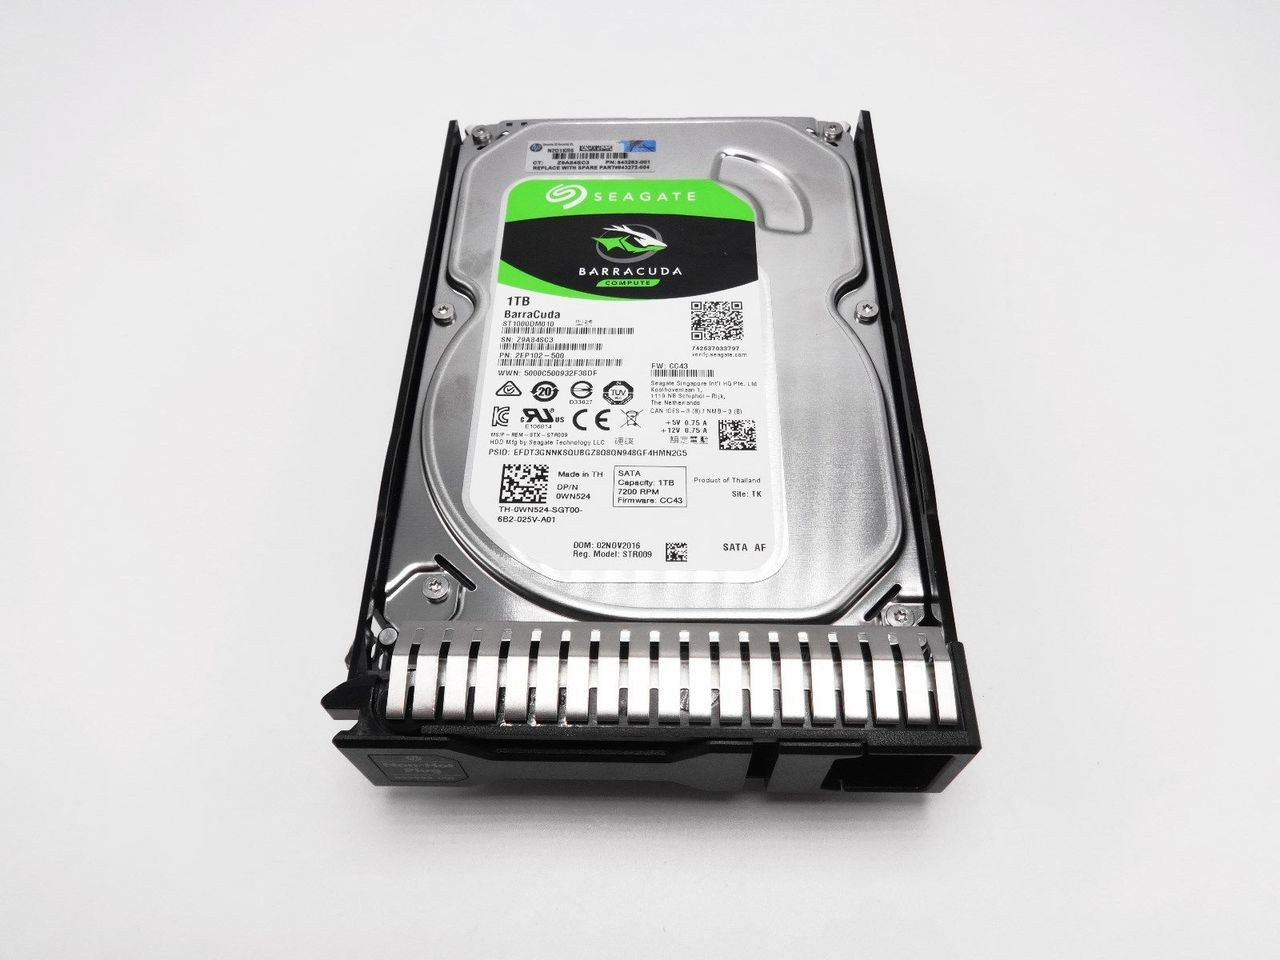 HP 843263-001 1TB Hard Drive 843272-004 with Gen 8 Tray 843272-004